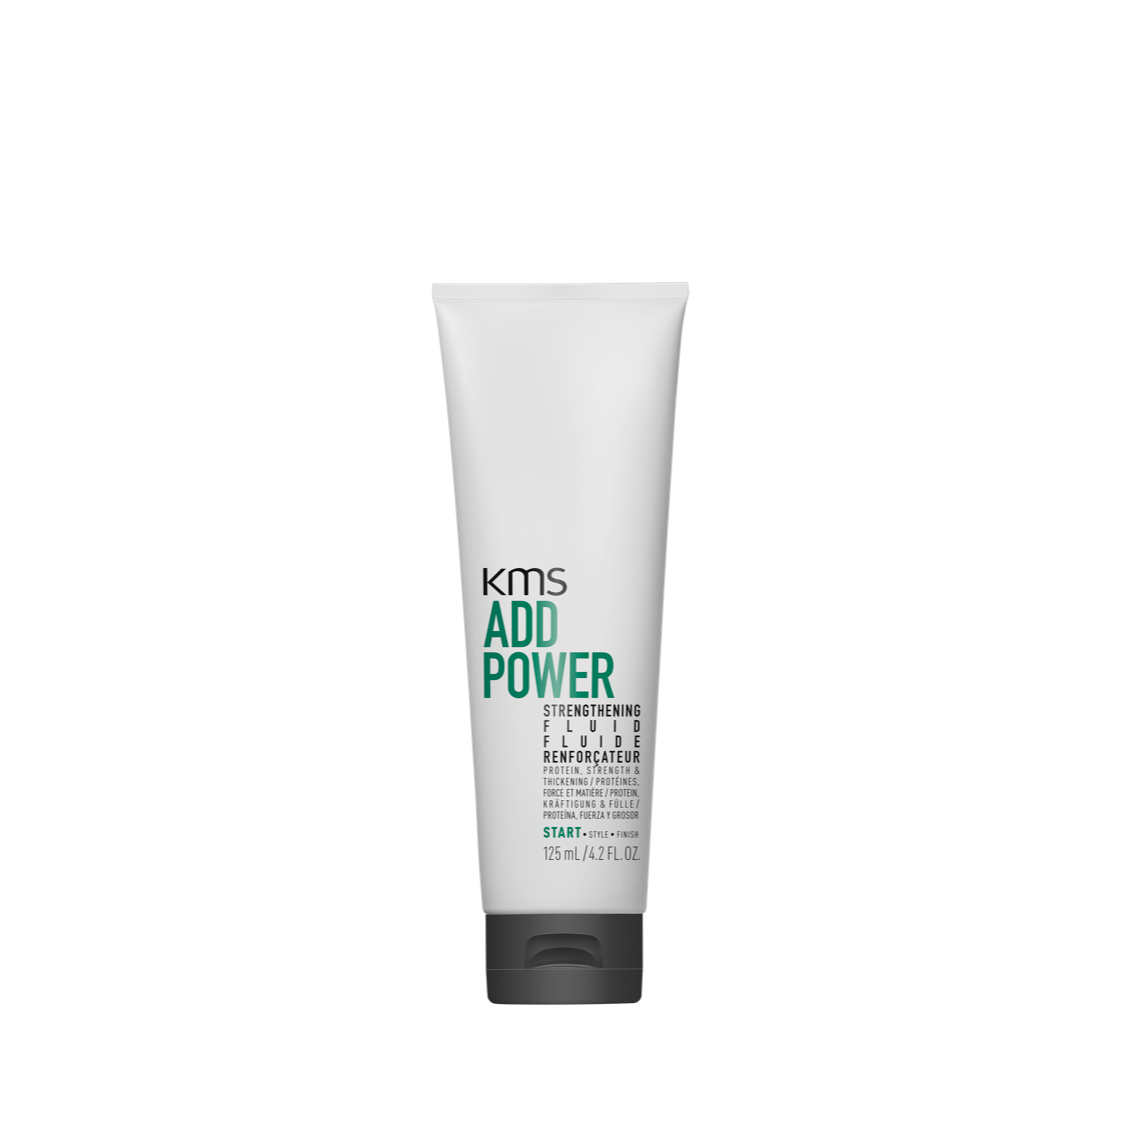 KMS AddPower Strengthening Fluid